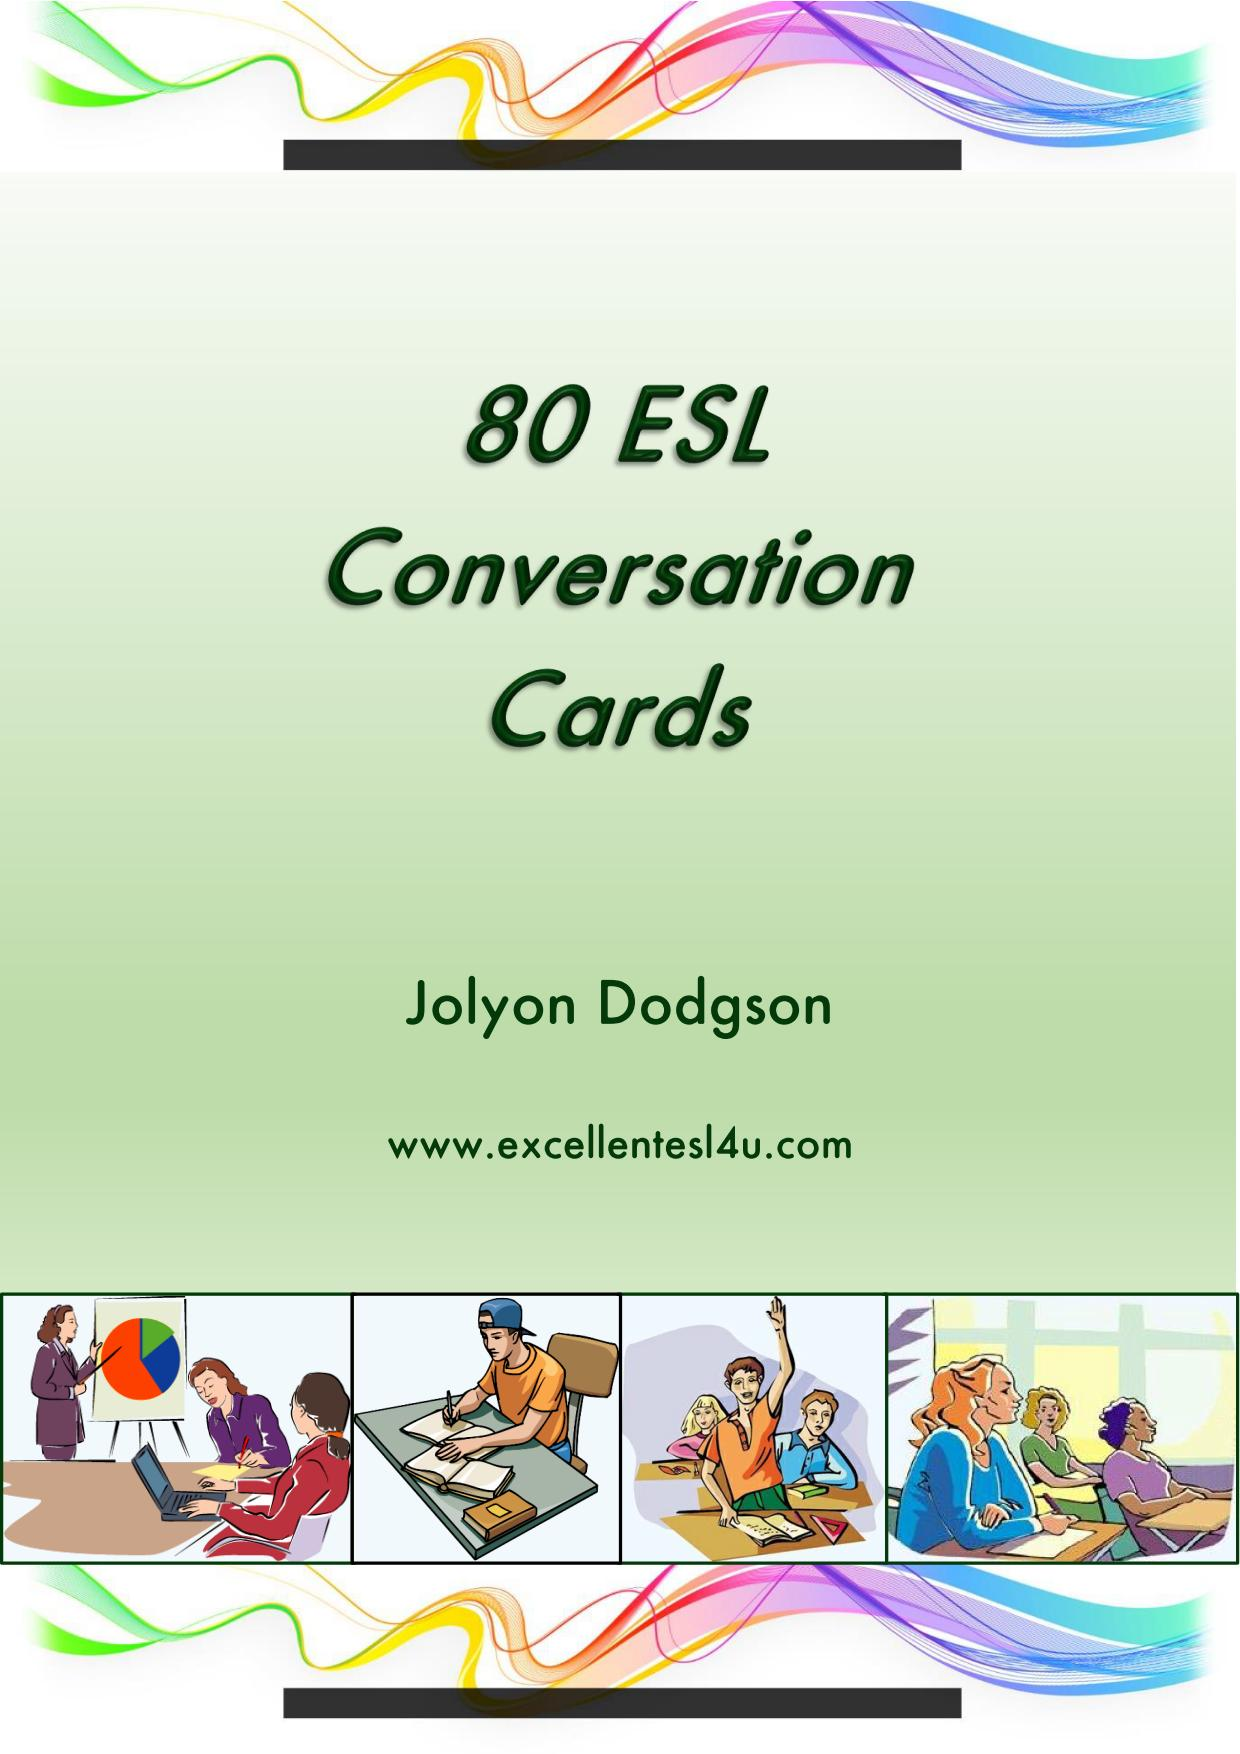 80 Esl Conversation Cards